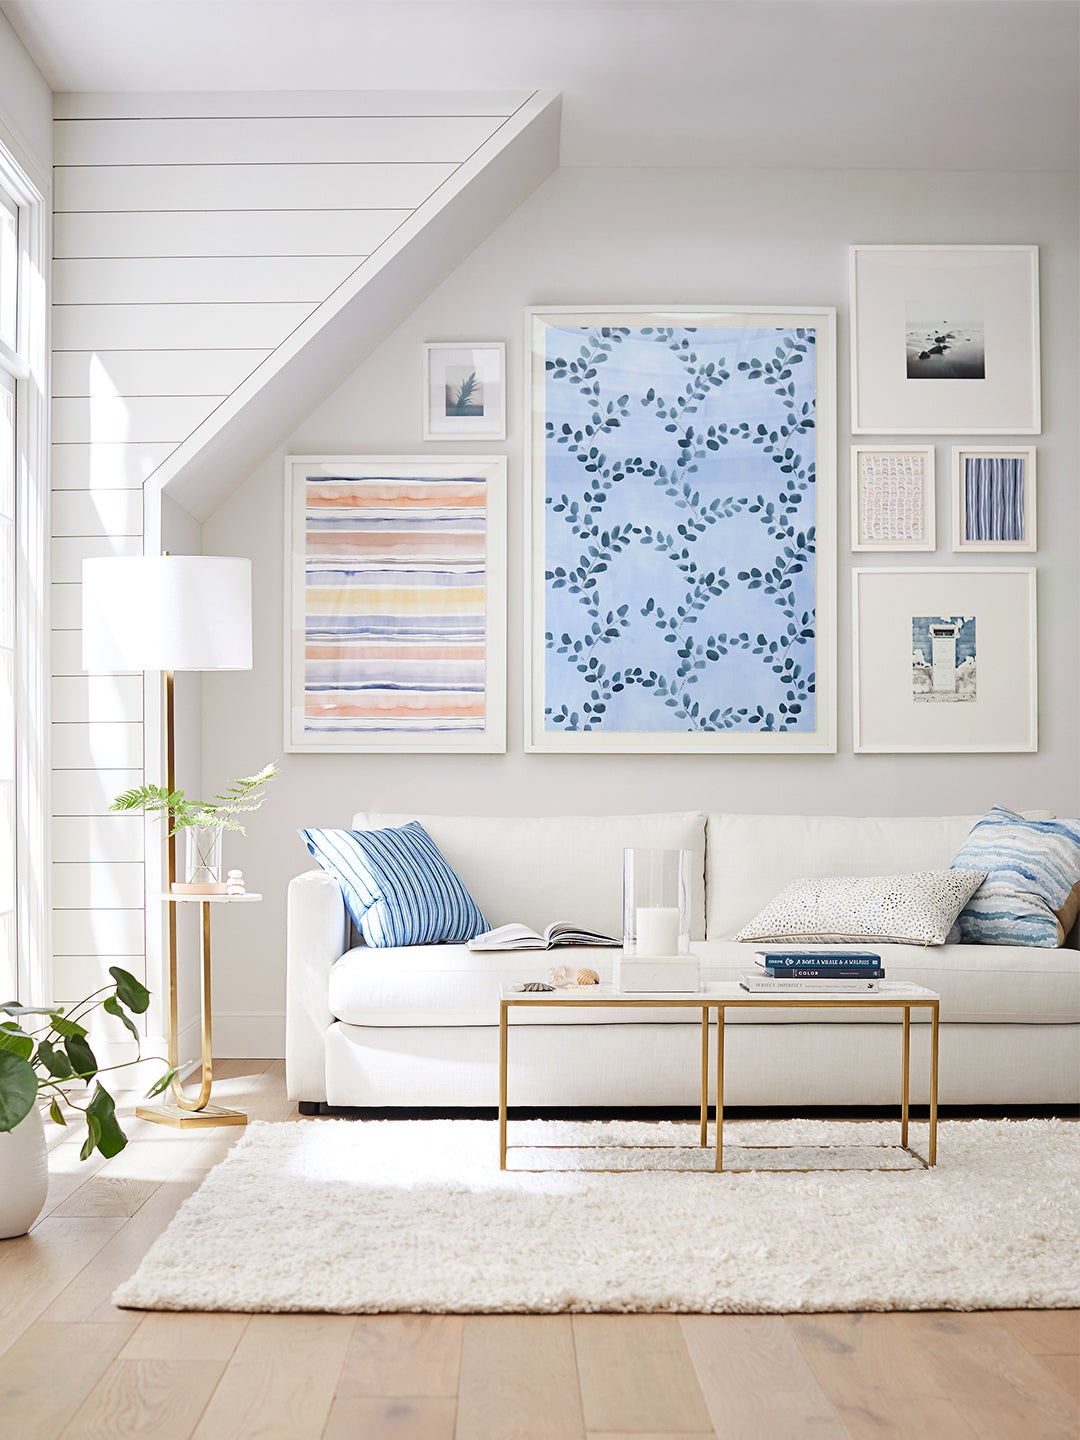 living room with Rebecca Atwood prints on wall